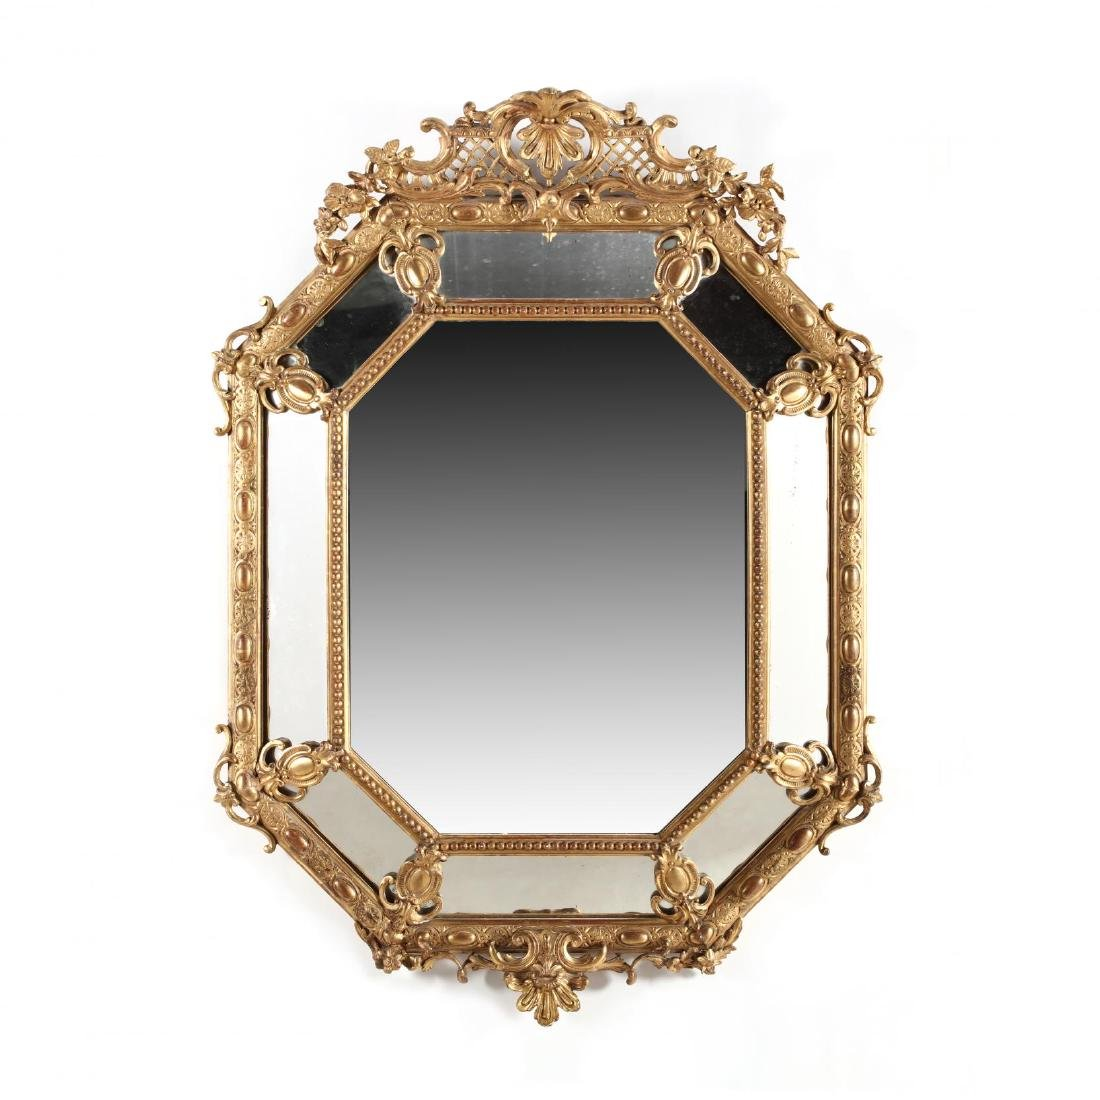 French Rococo Style Paneled Mirror